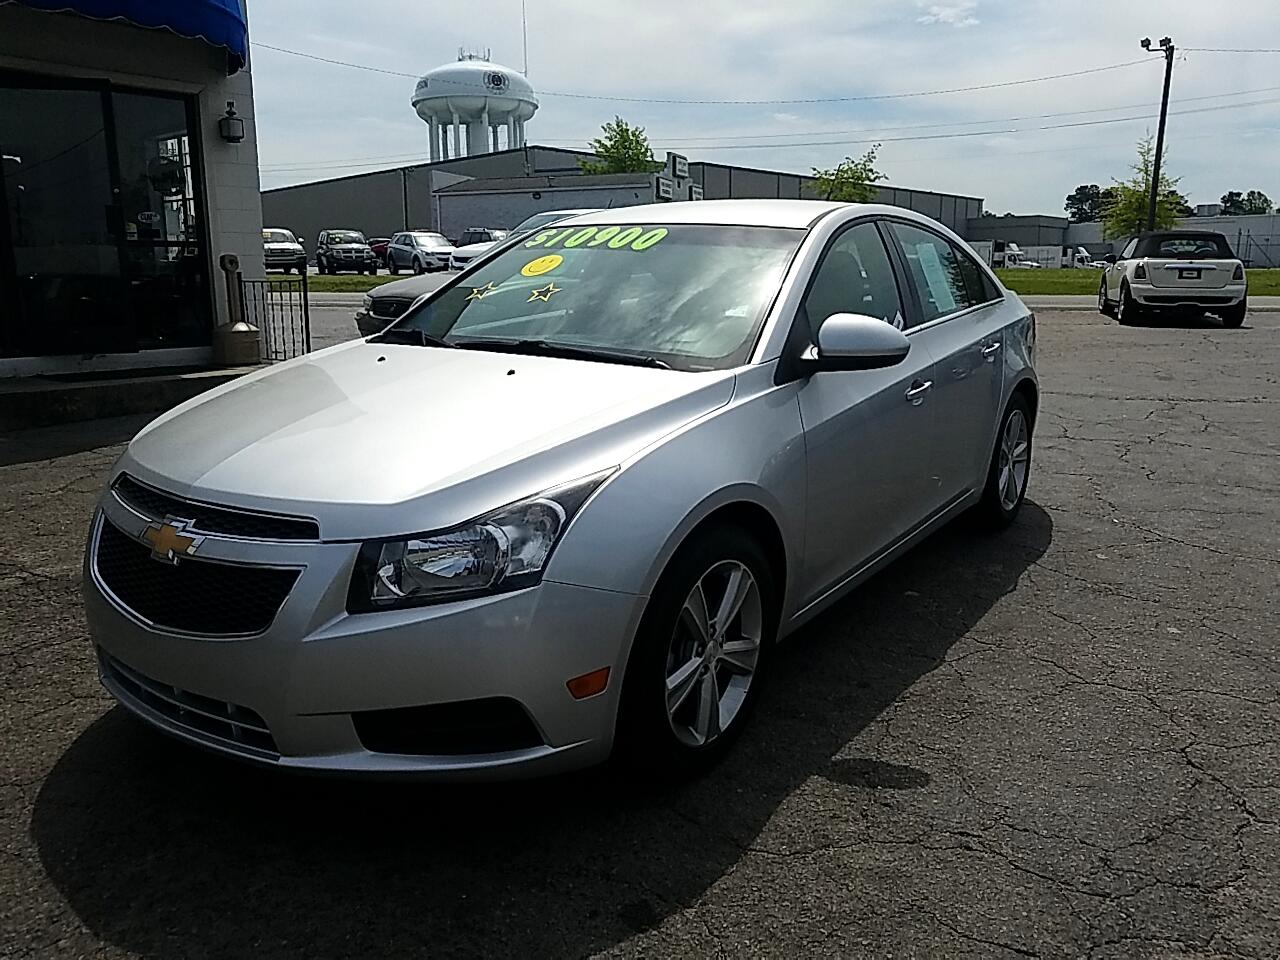 used 2014 chevrolet cruze 2lt auto for sale in henderson nc 27536 auto mart of henderson auto mart of henderson